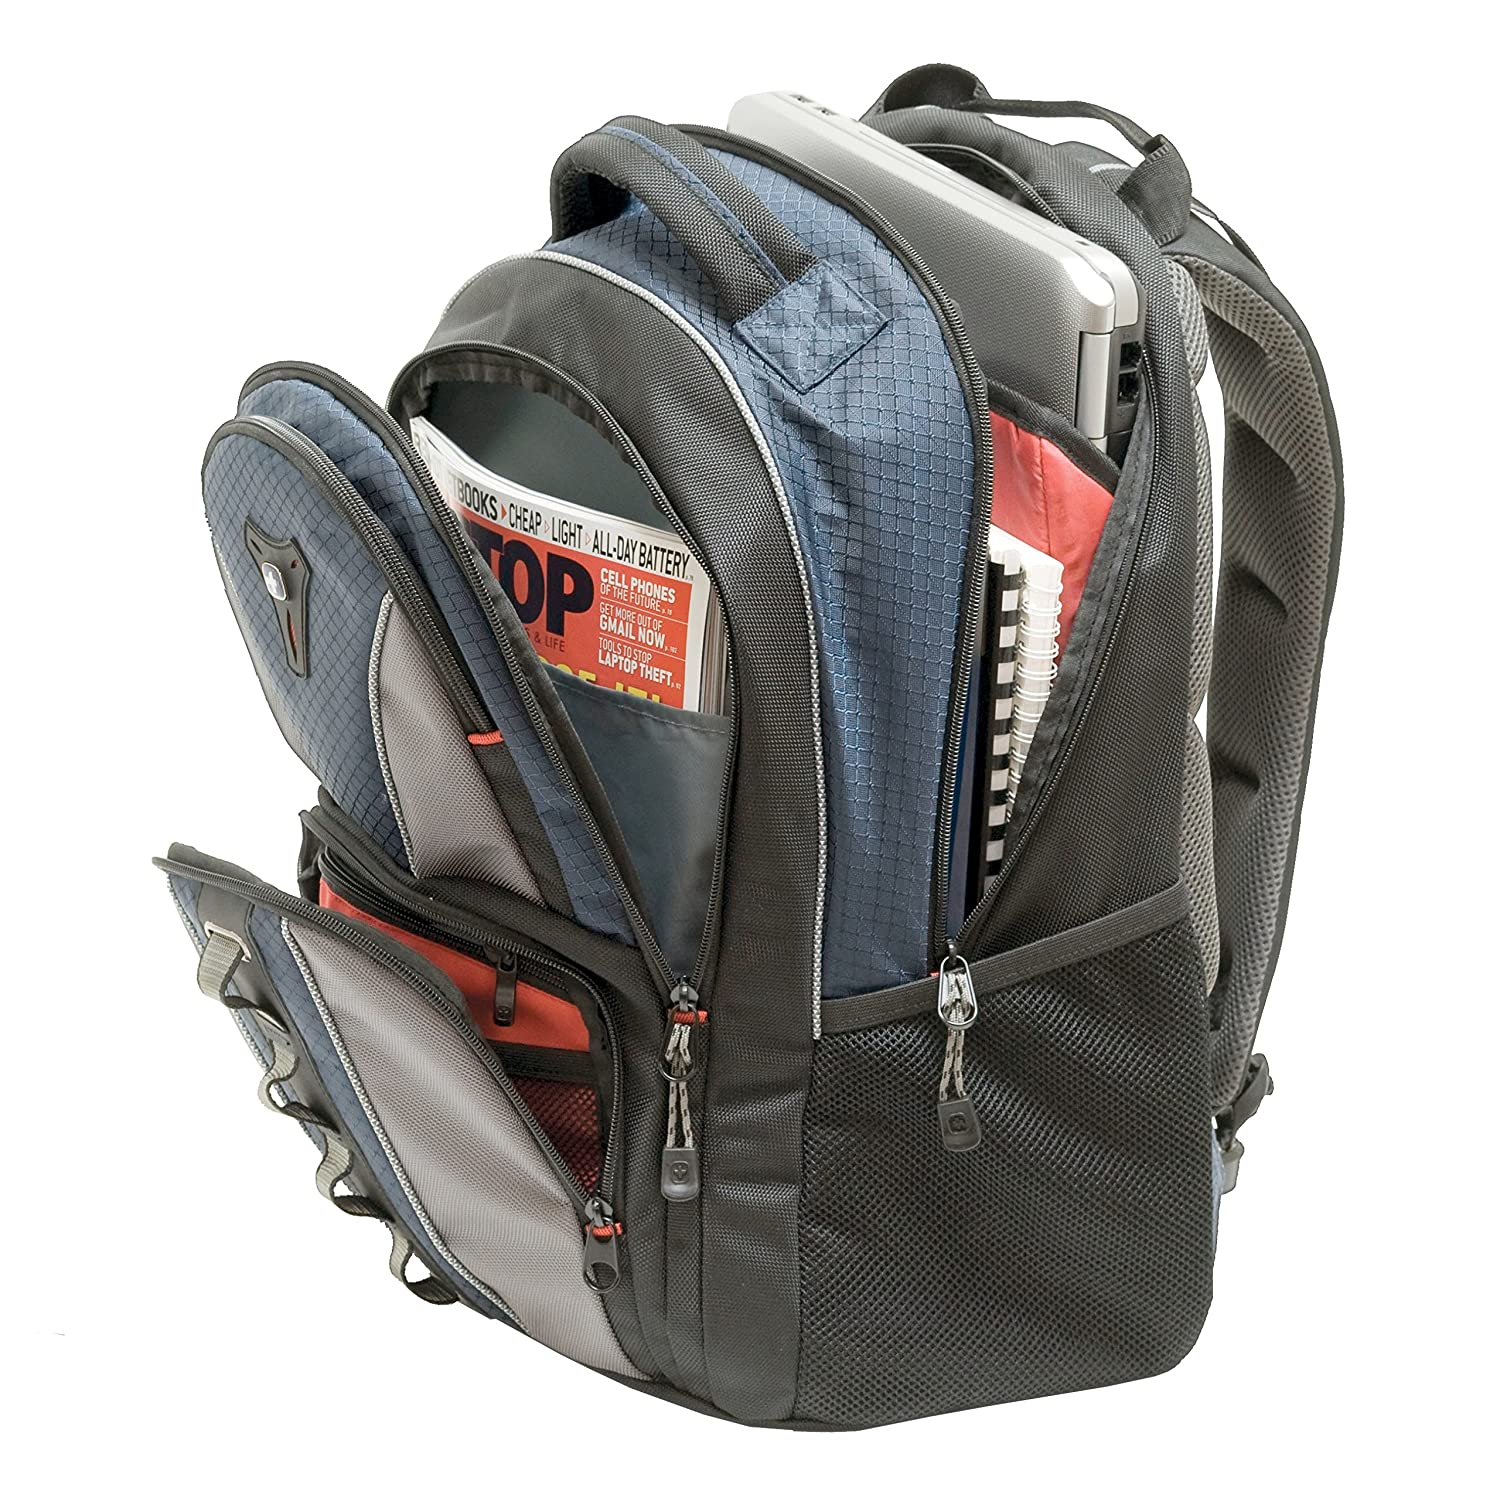 Wenger Swiss Gear Synergy Computer Backpack Click Backpacks